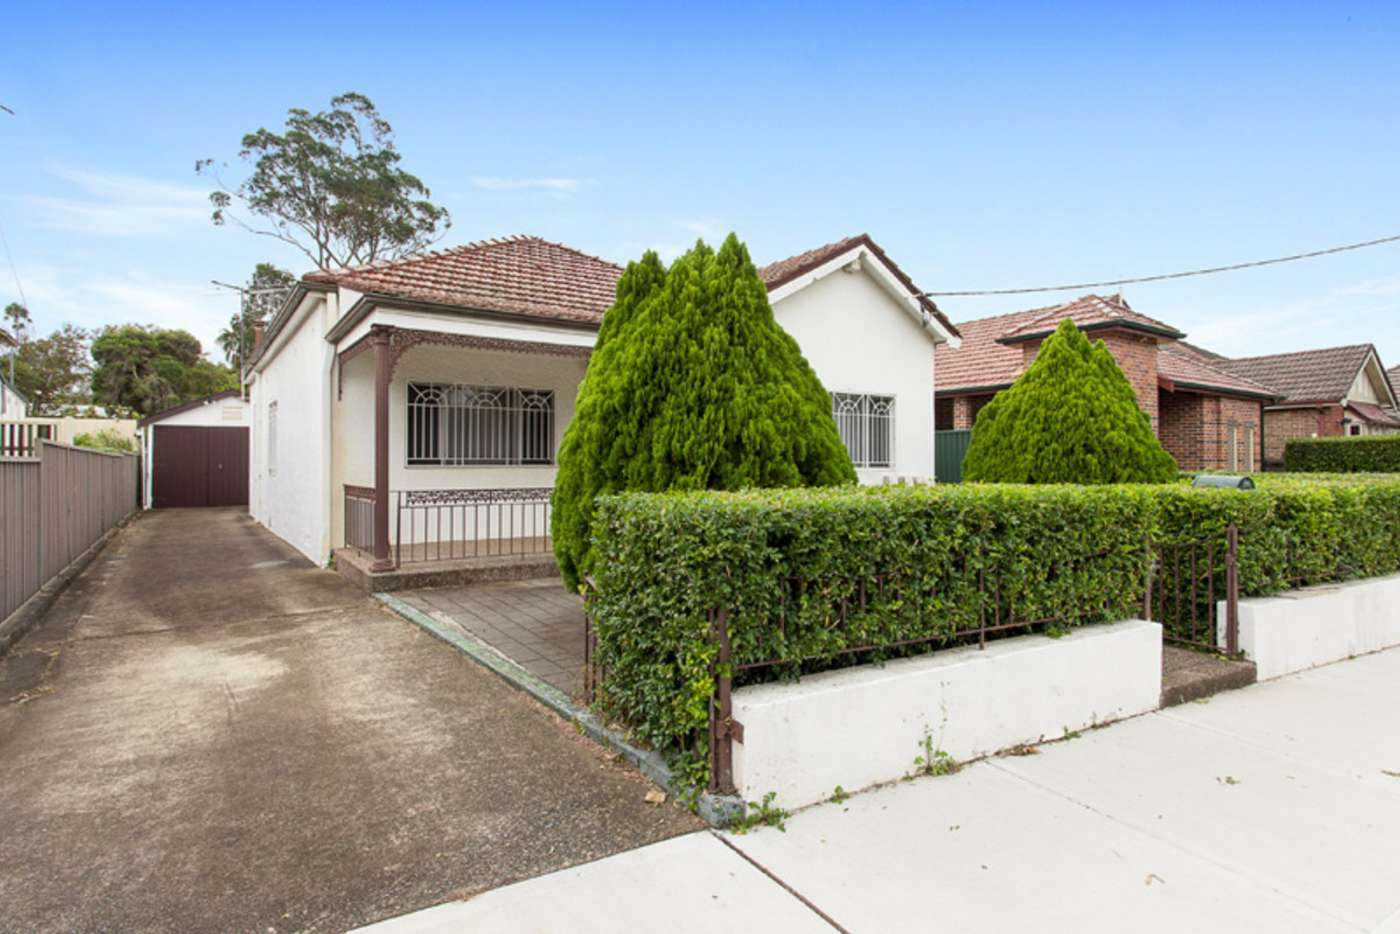 Main view of Homely house listing, 7 Cross Street, Croydon NSW 2132